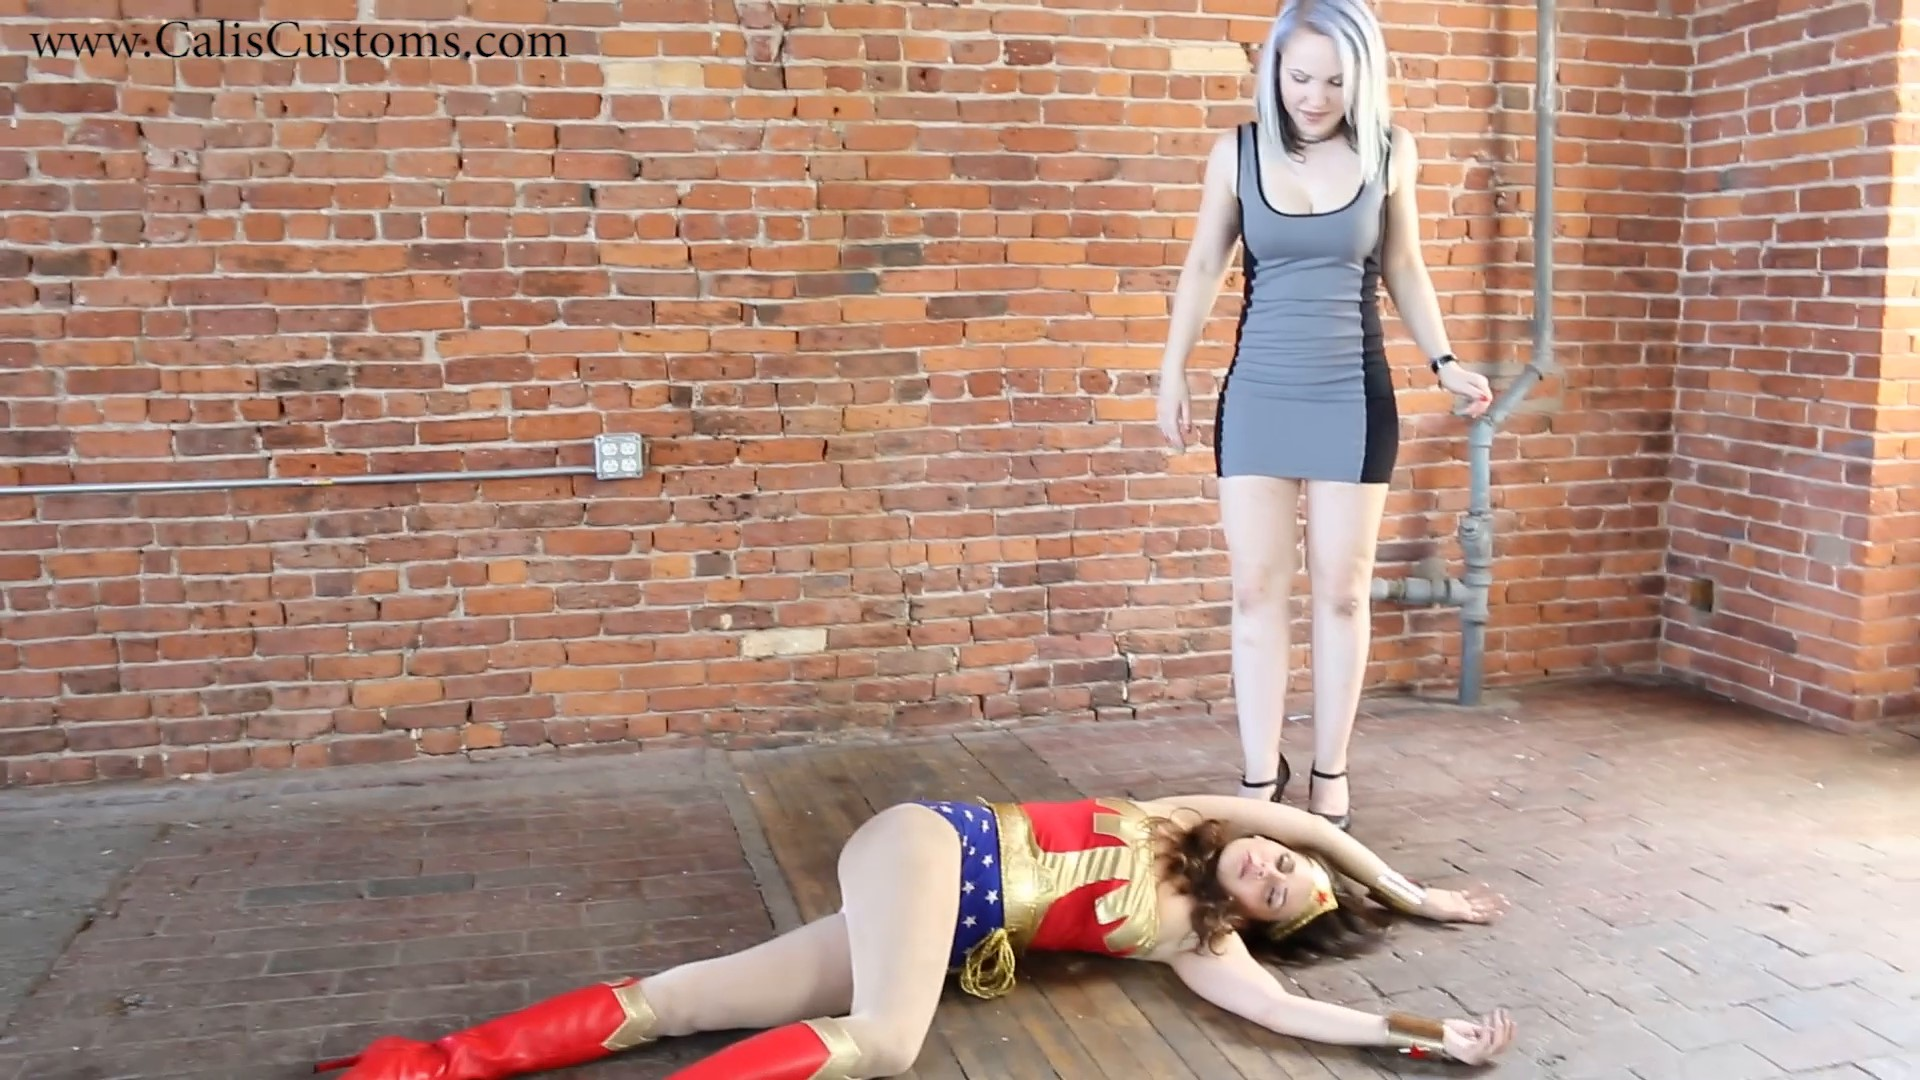 CALI The Wonder Woman KO Trap (46)